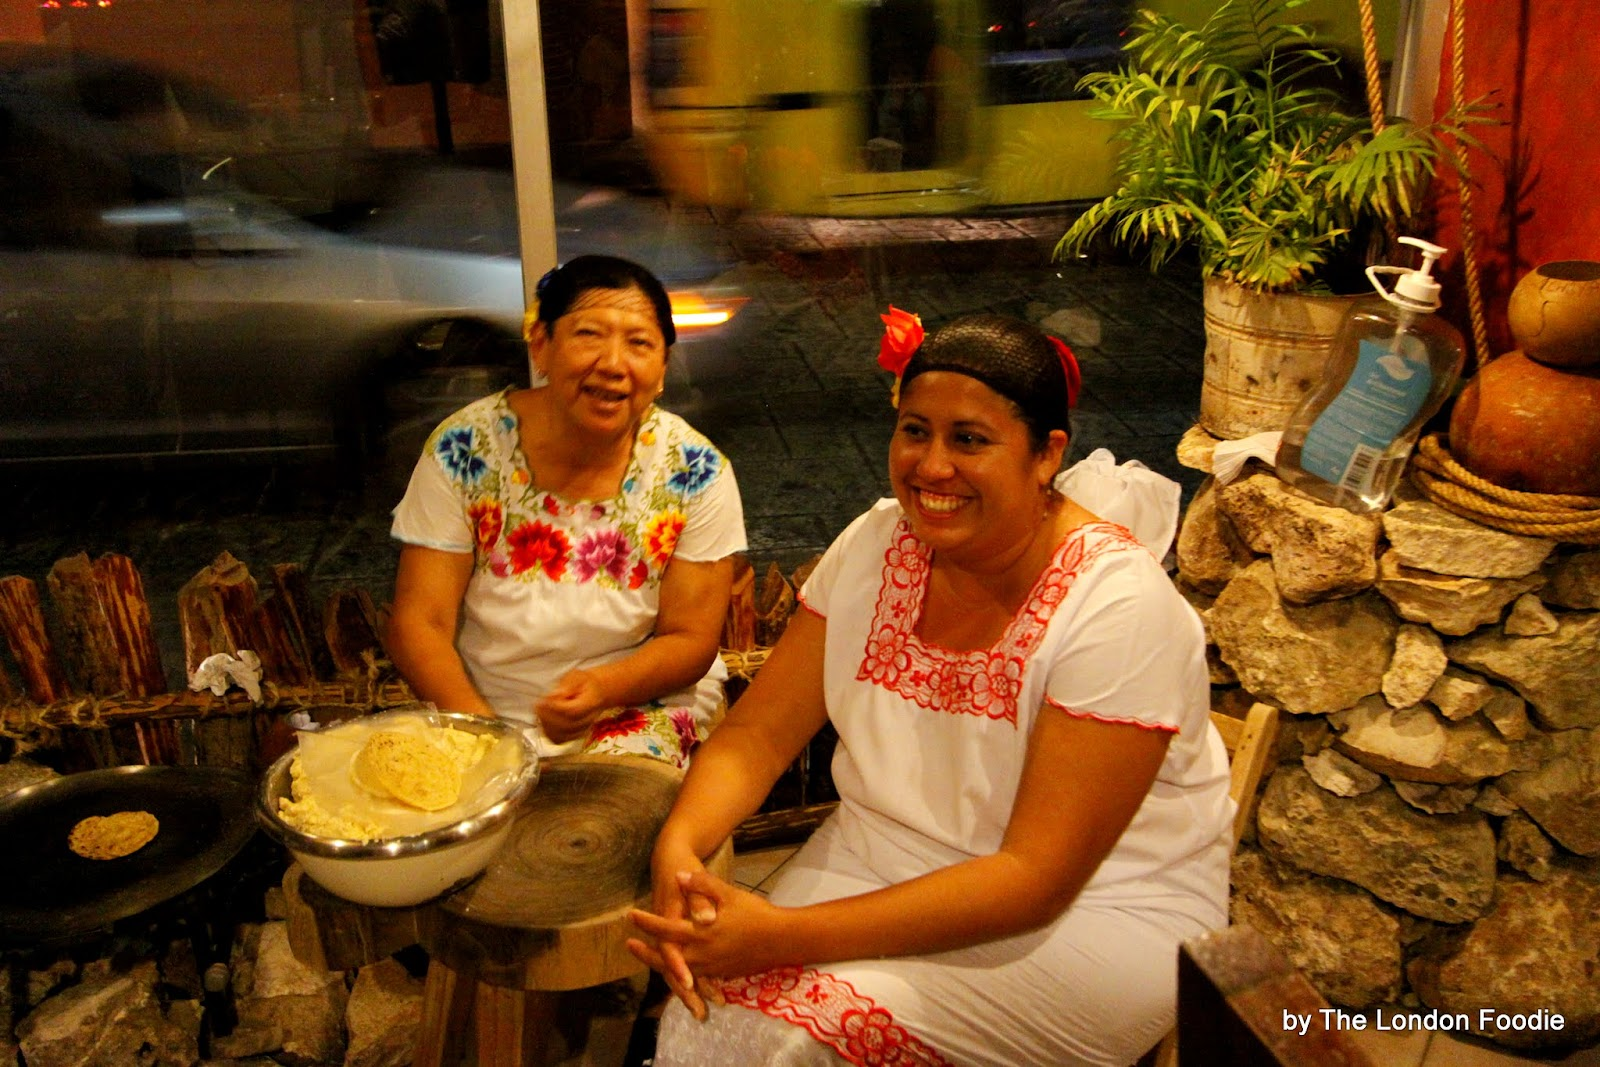 The London Foodie Goes To Mexico